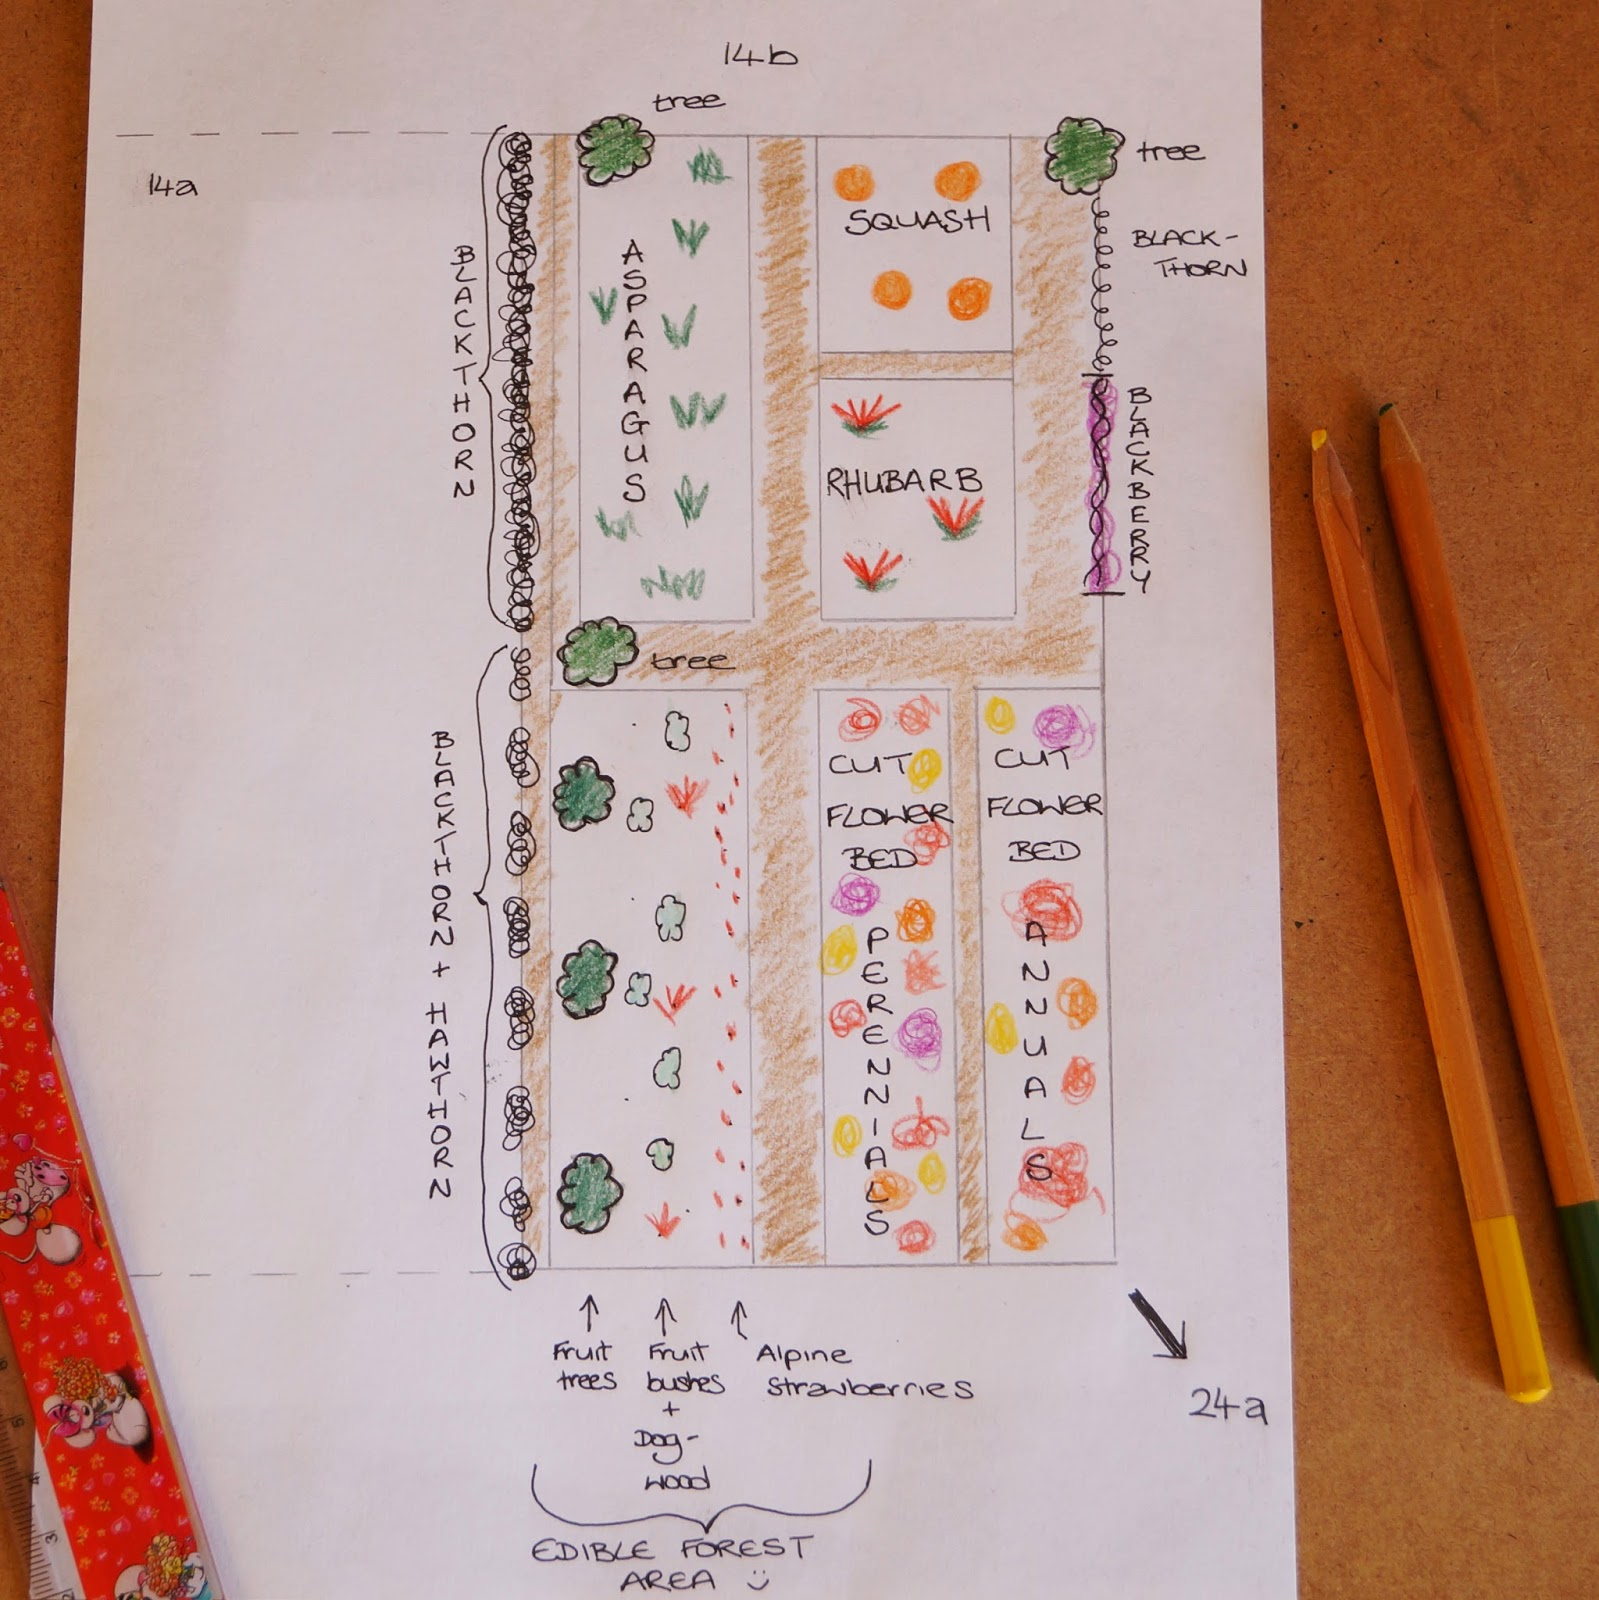 awesome 14b plot plan ~ growourown.blogspot.com